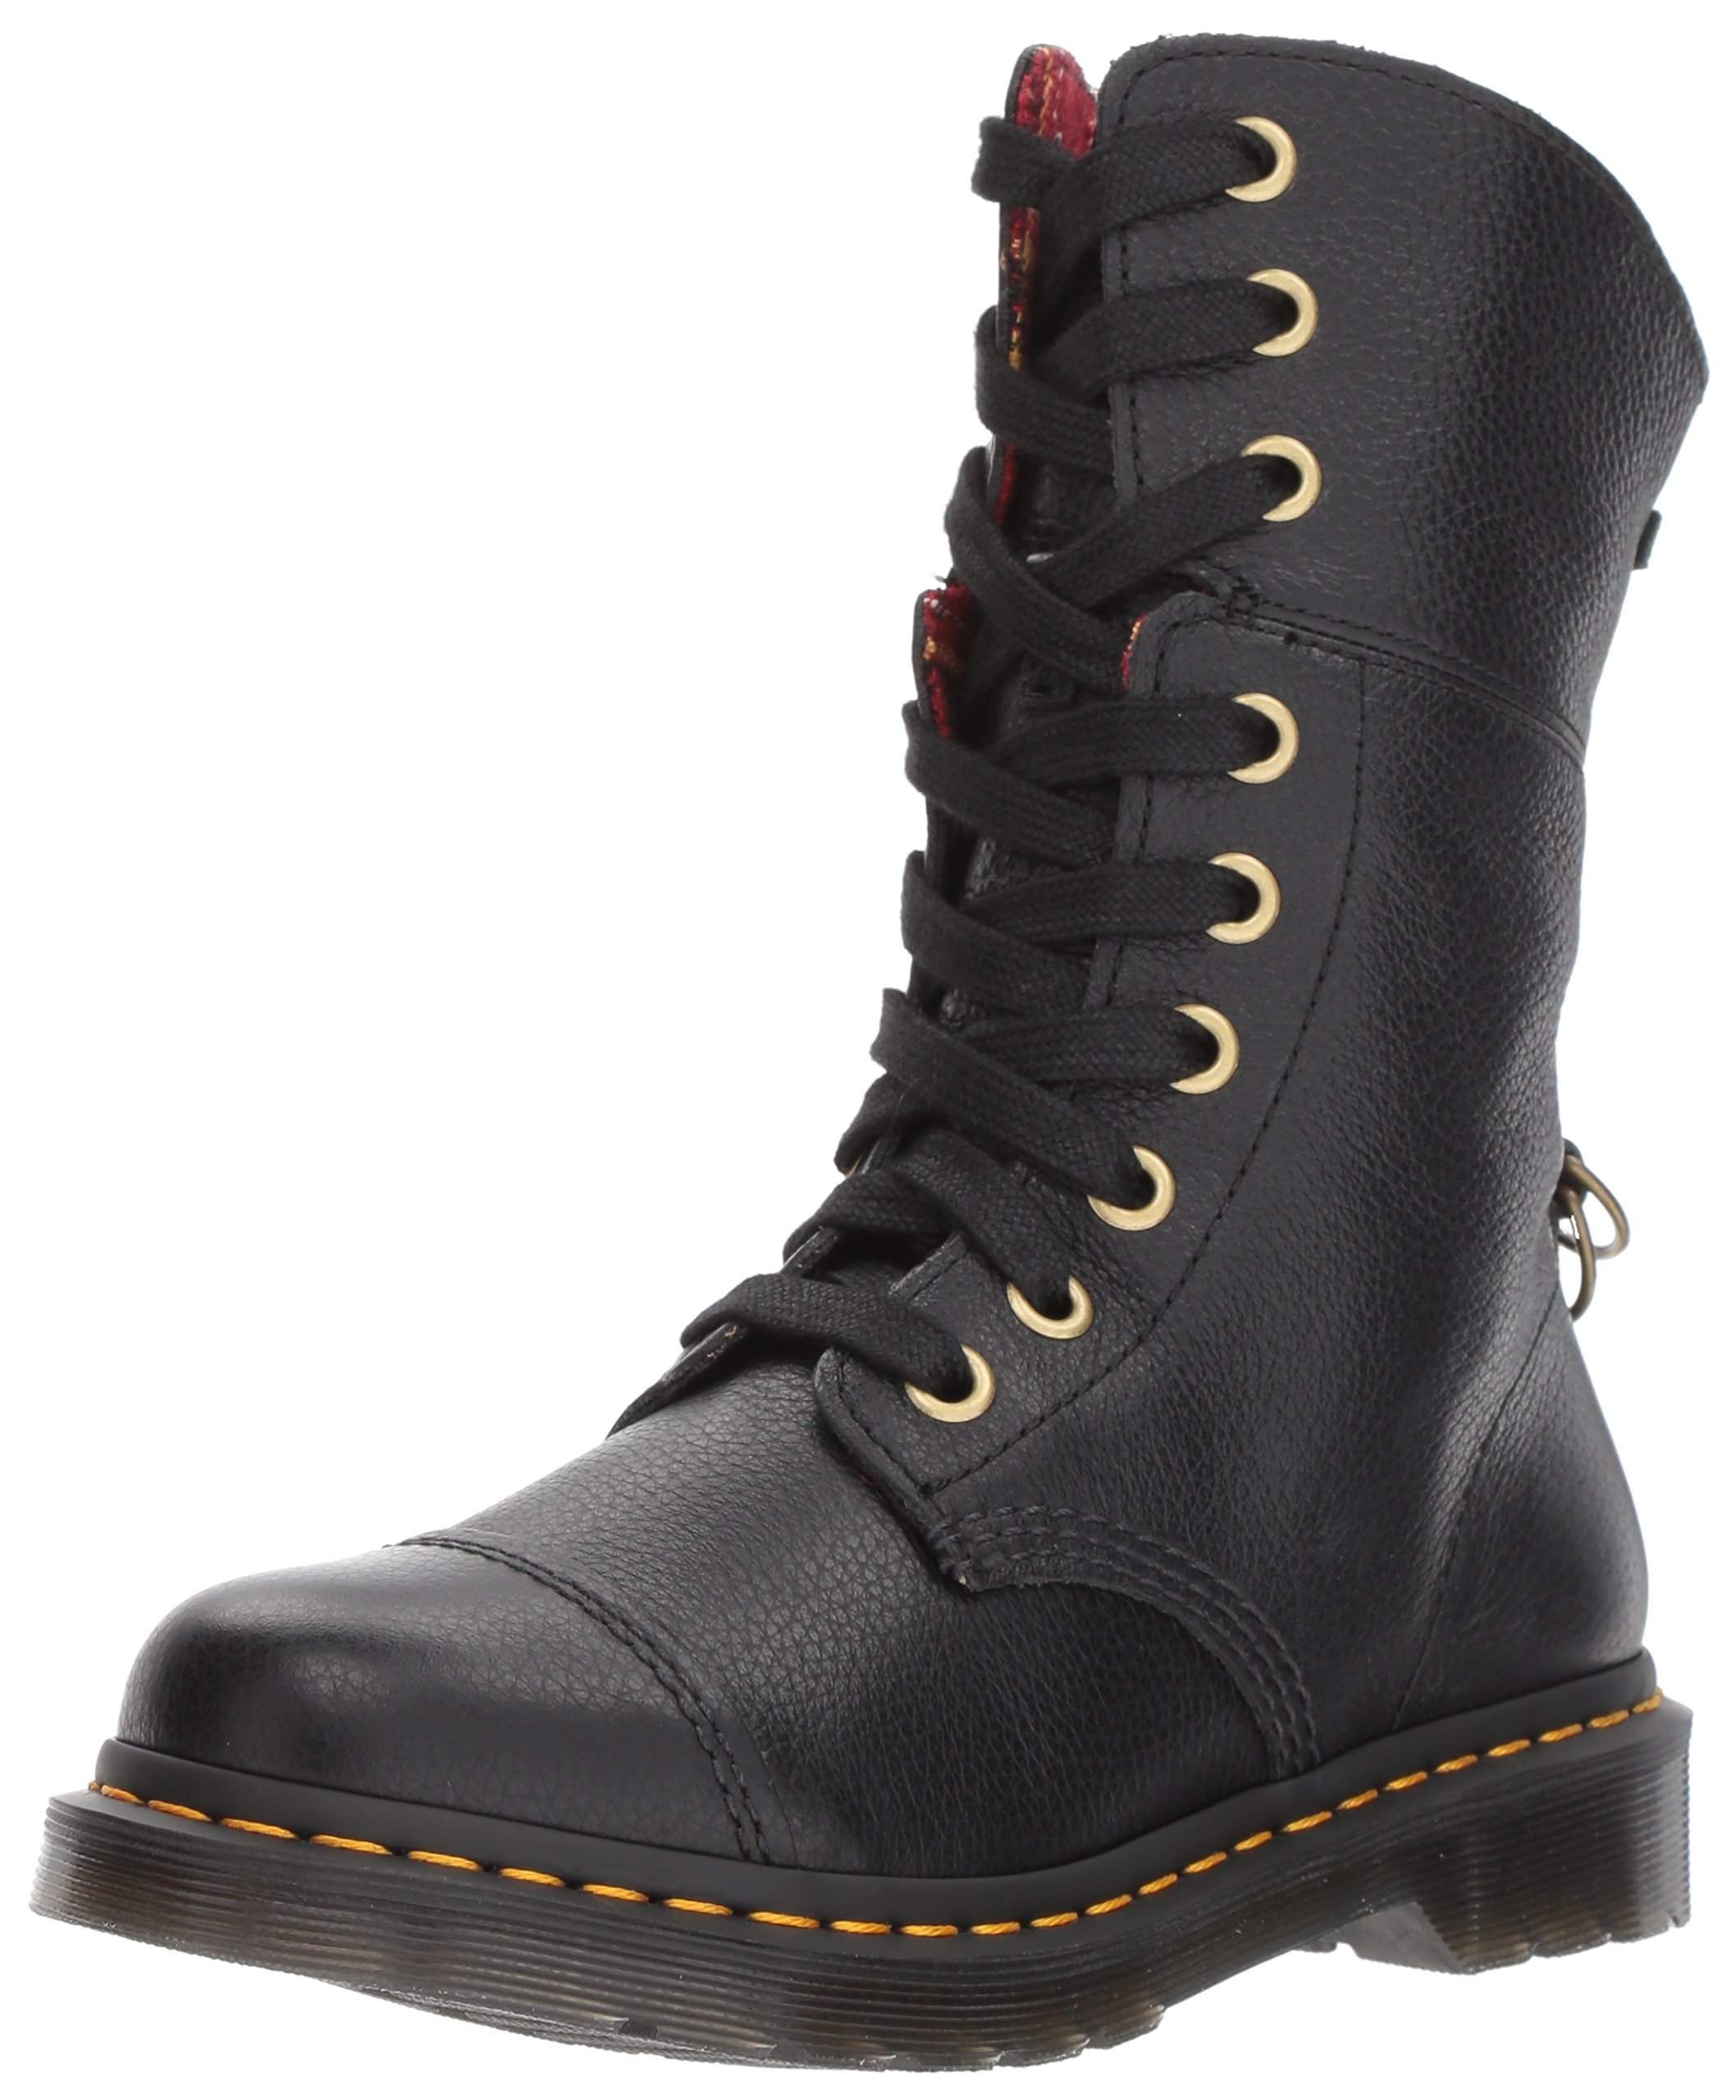 Dr. Martens Women's Aimilita Black Aunt Sally Leather Fashion Boot, 5 Medium UK (7 US) by Dr. Martens